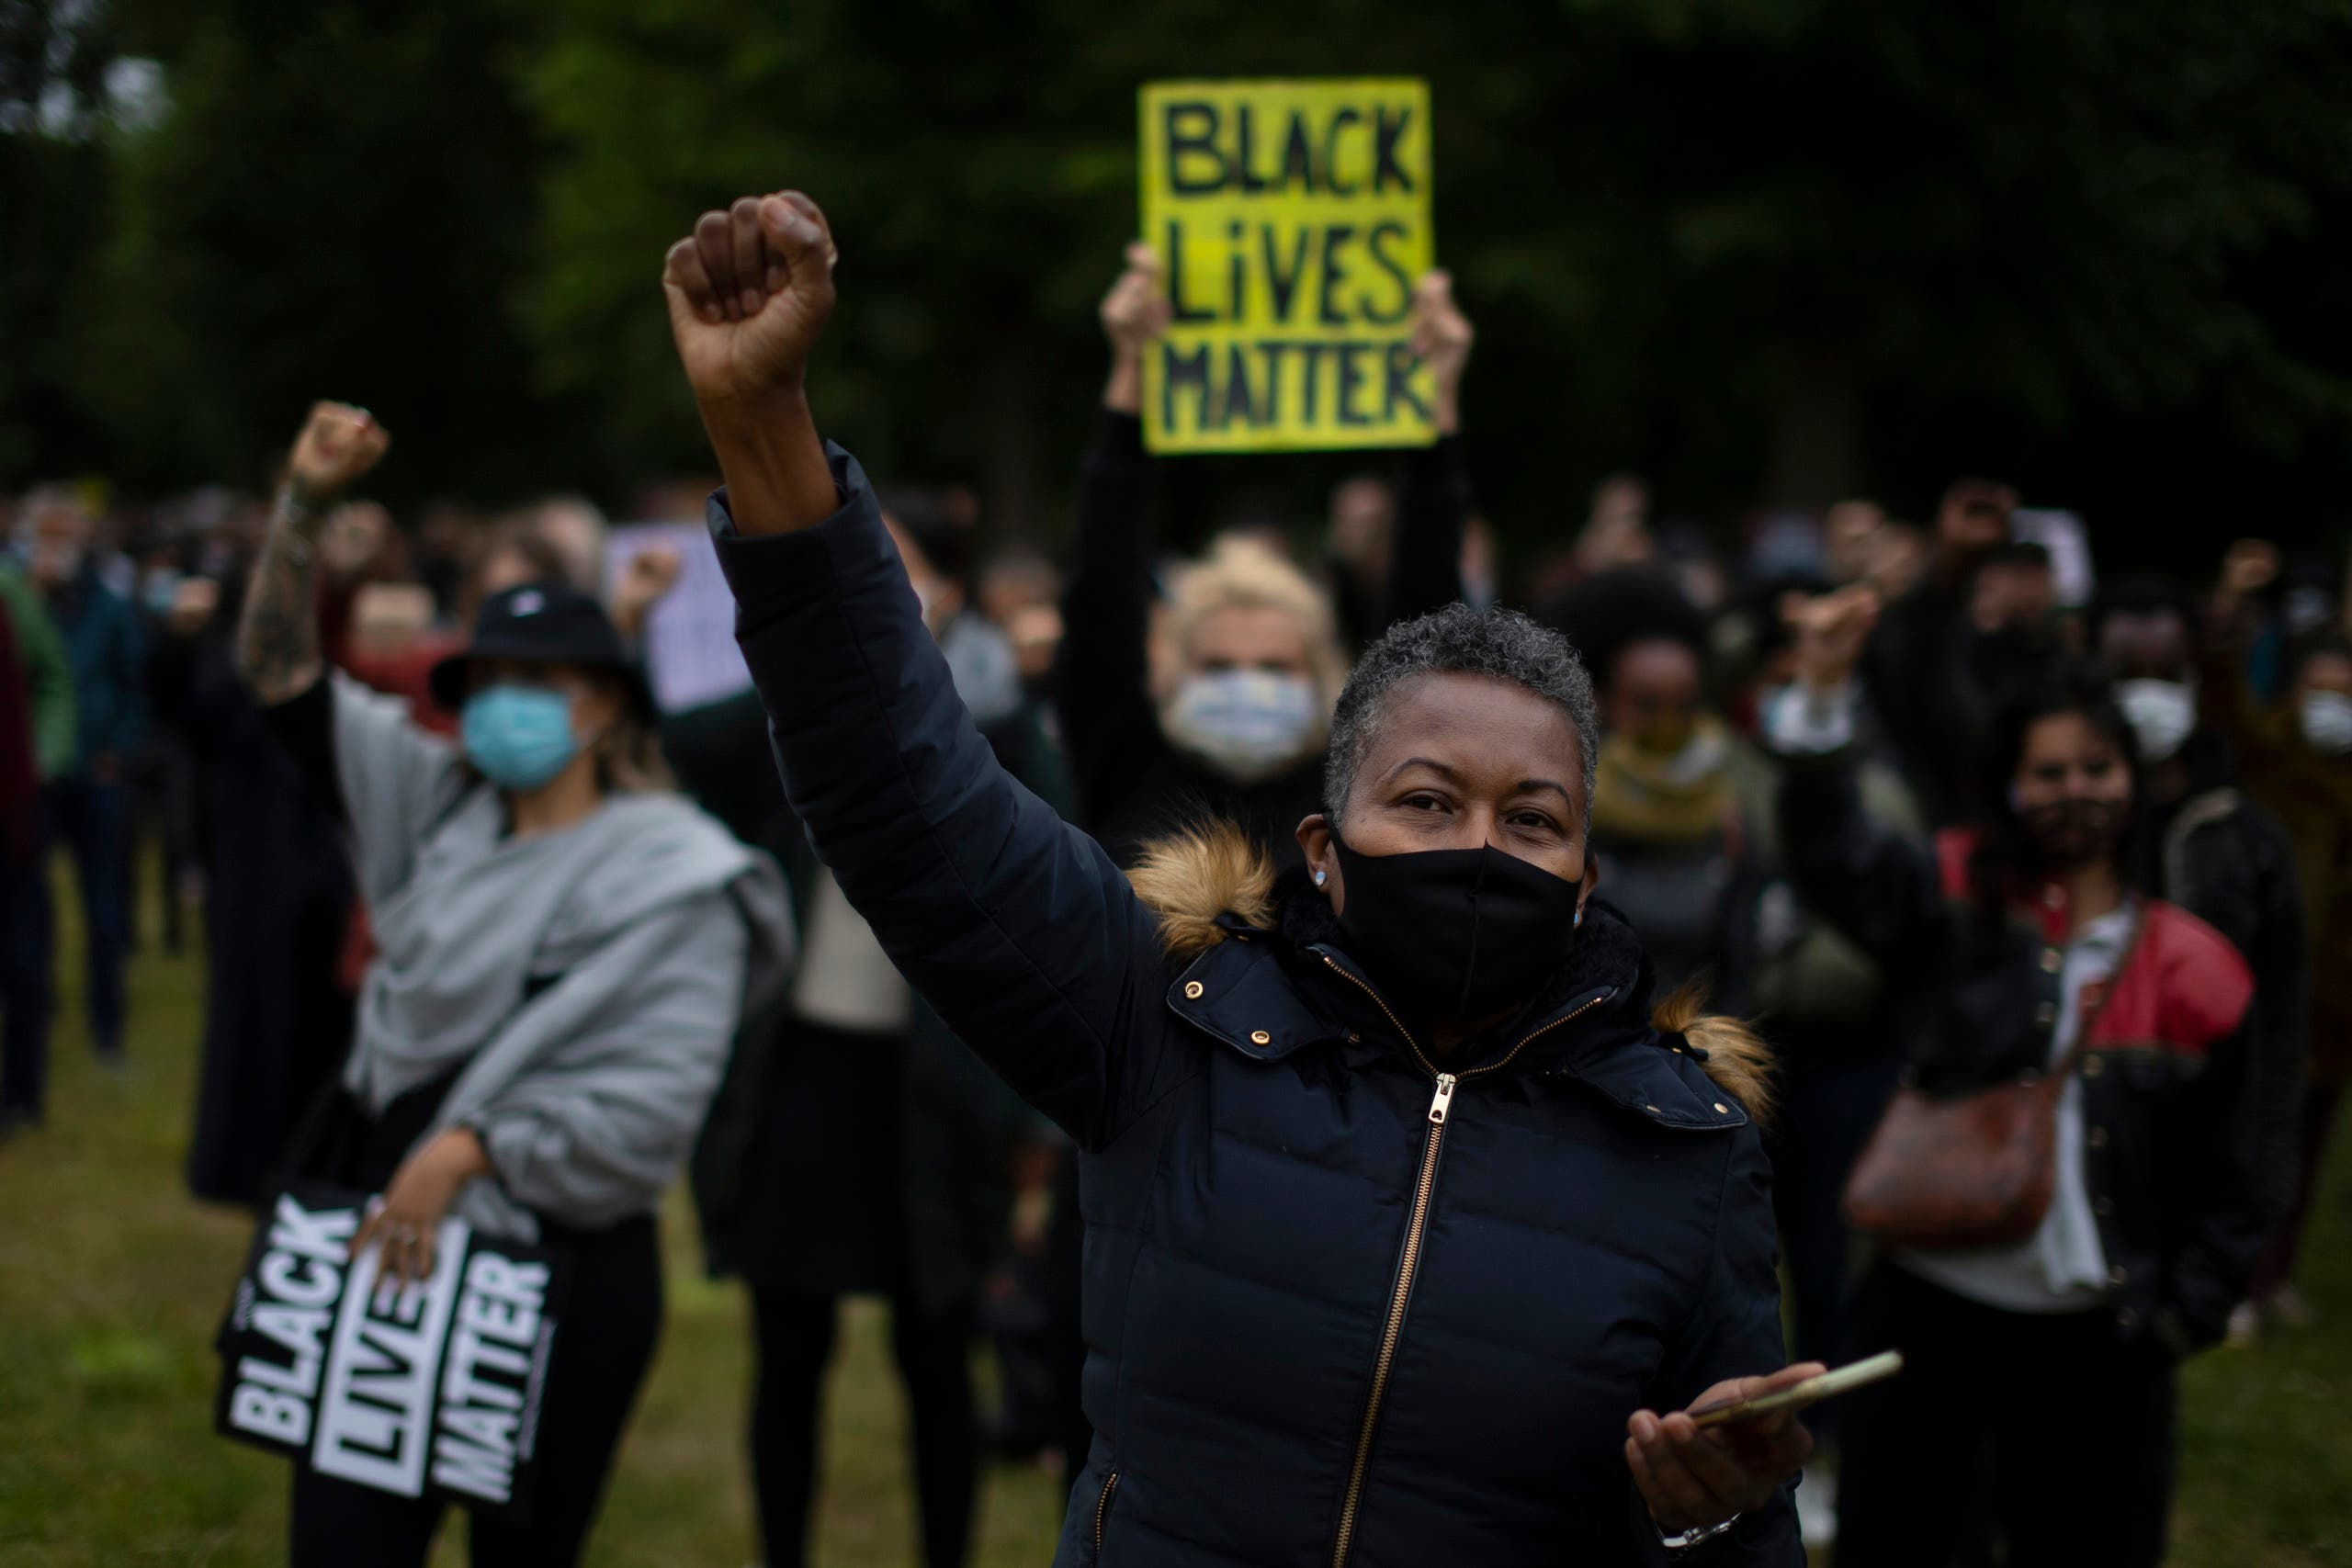 In this file photo dated Wednesday June 10, 2020, some thousands of people demonstrate in support of the Black Lives Matter movement, in a park in Amsterdam. (File photo: AP)